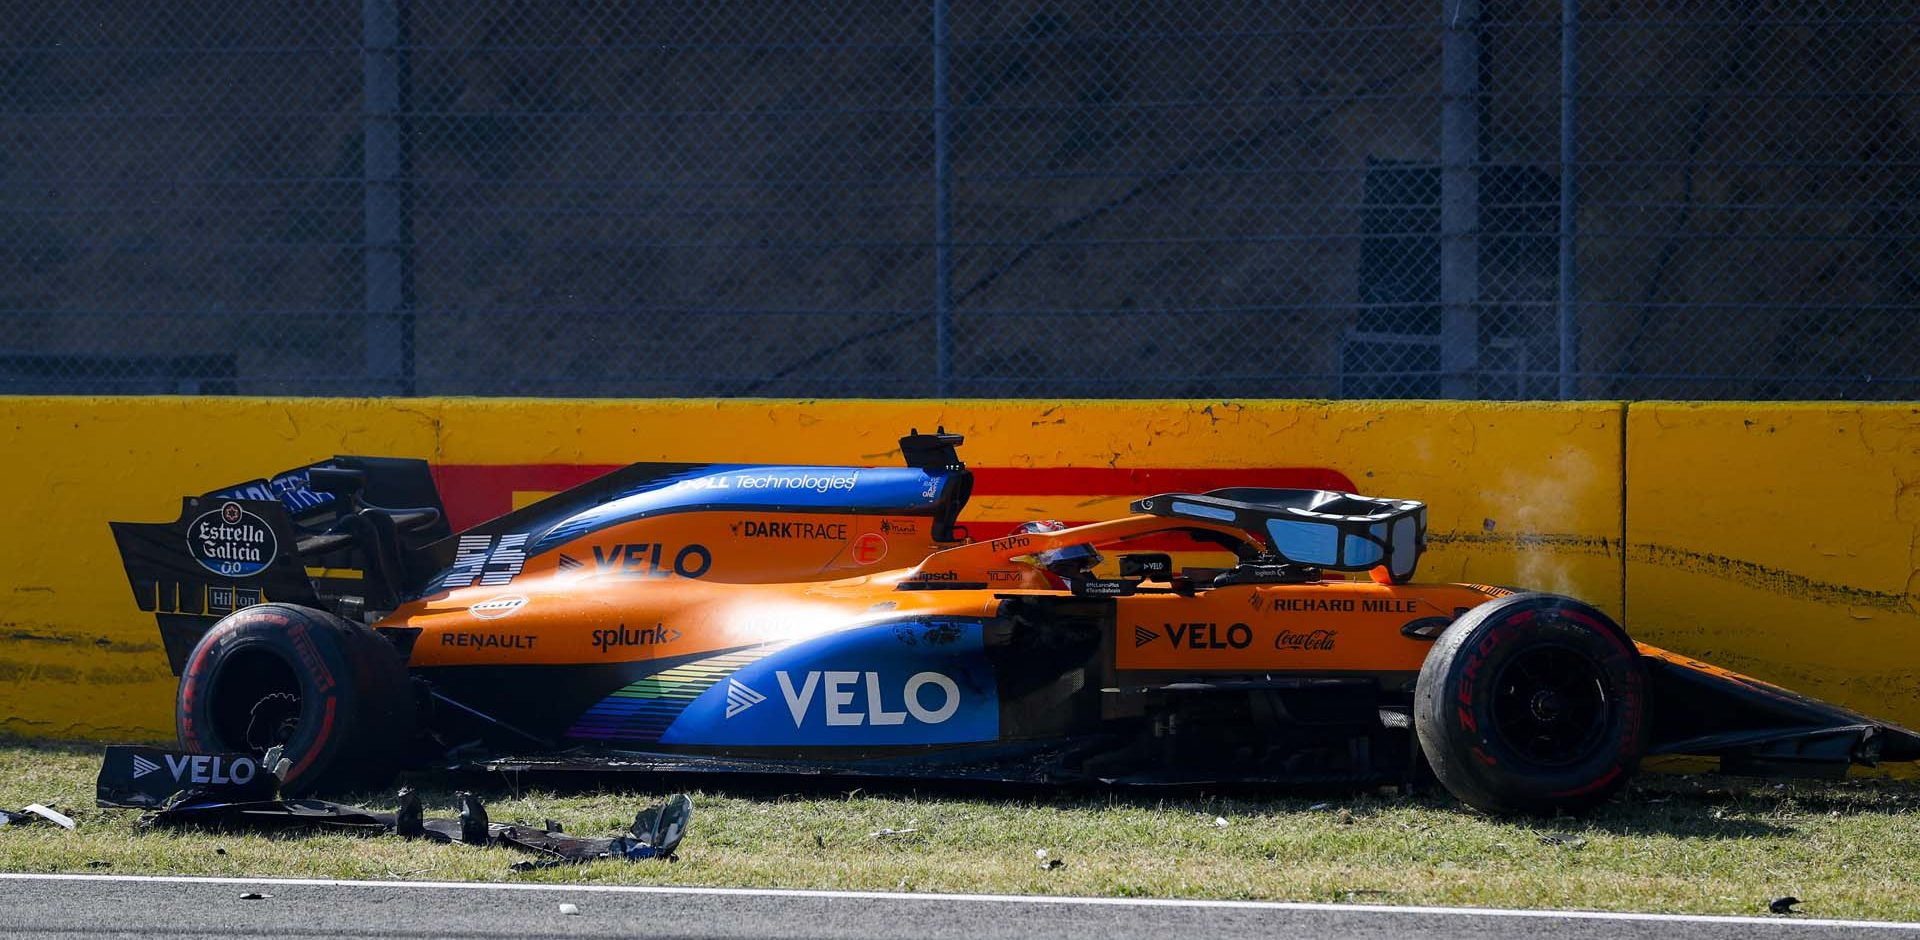 Carlos Sainz, McLaren MCL35, crashes out